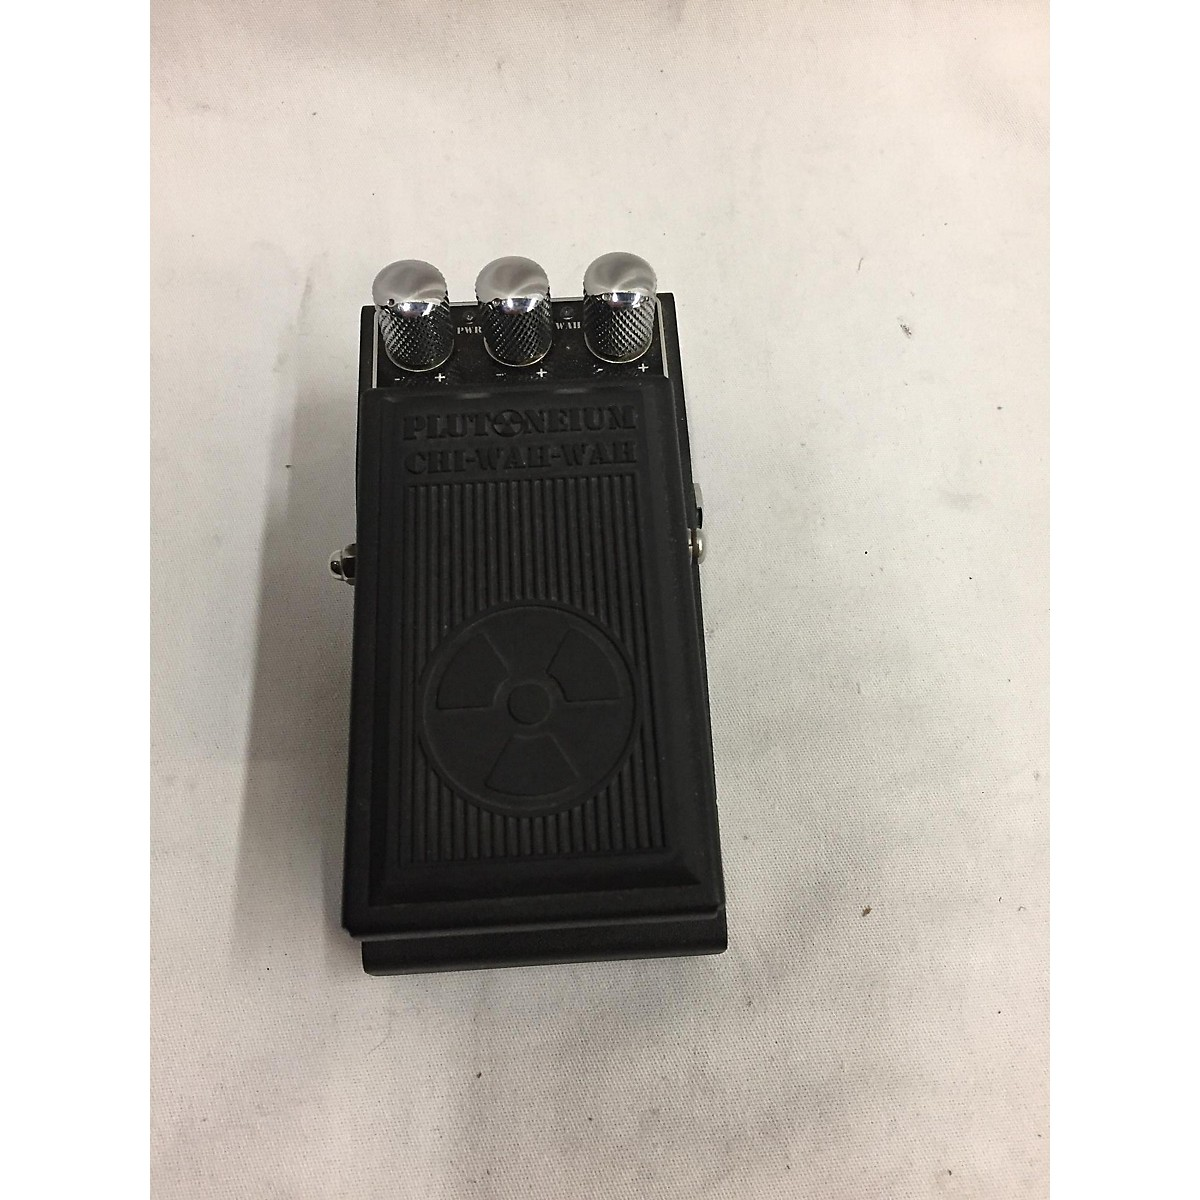 In Store Used Used Plutoneium Chi Wha Wah Effect Pedal